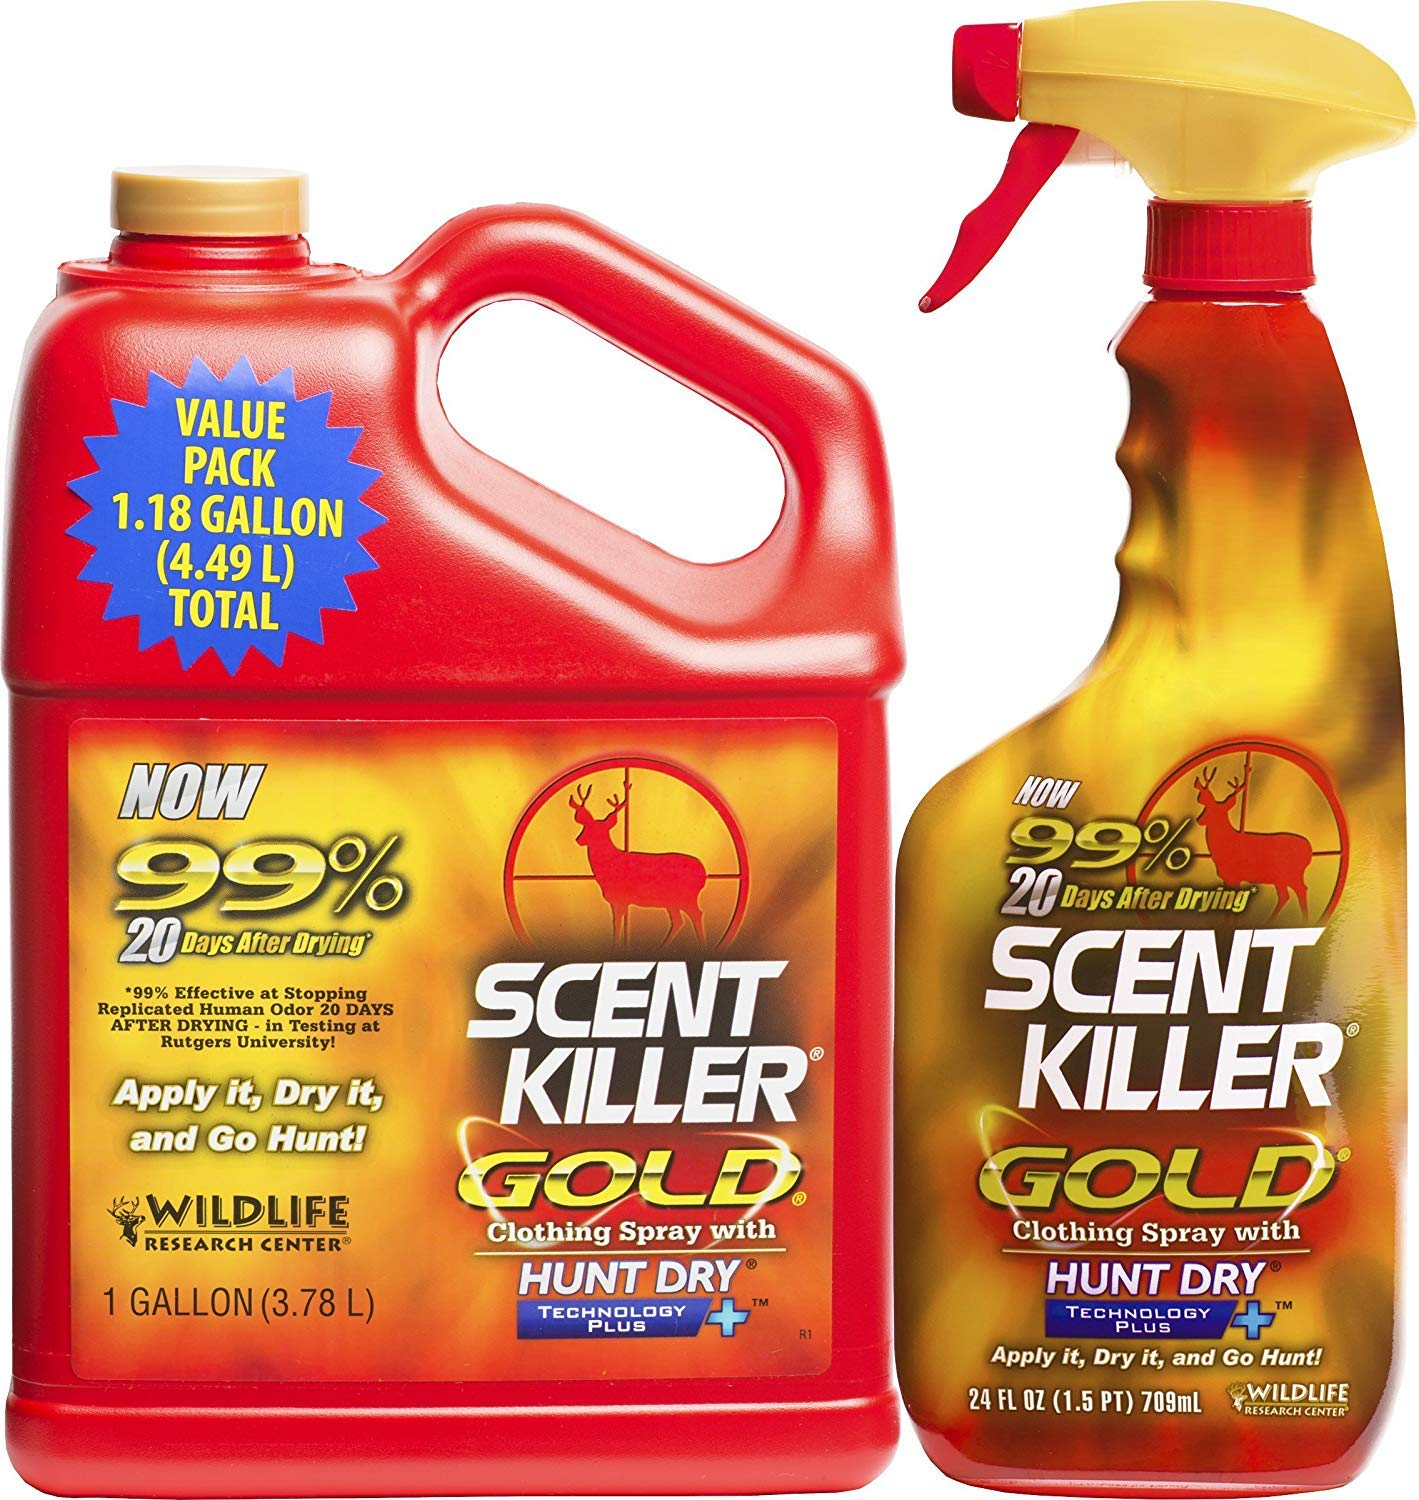 Wildlife Research Gold 1 Gallon Re-Filler Combo Scent Killer (Limited Edition)